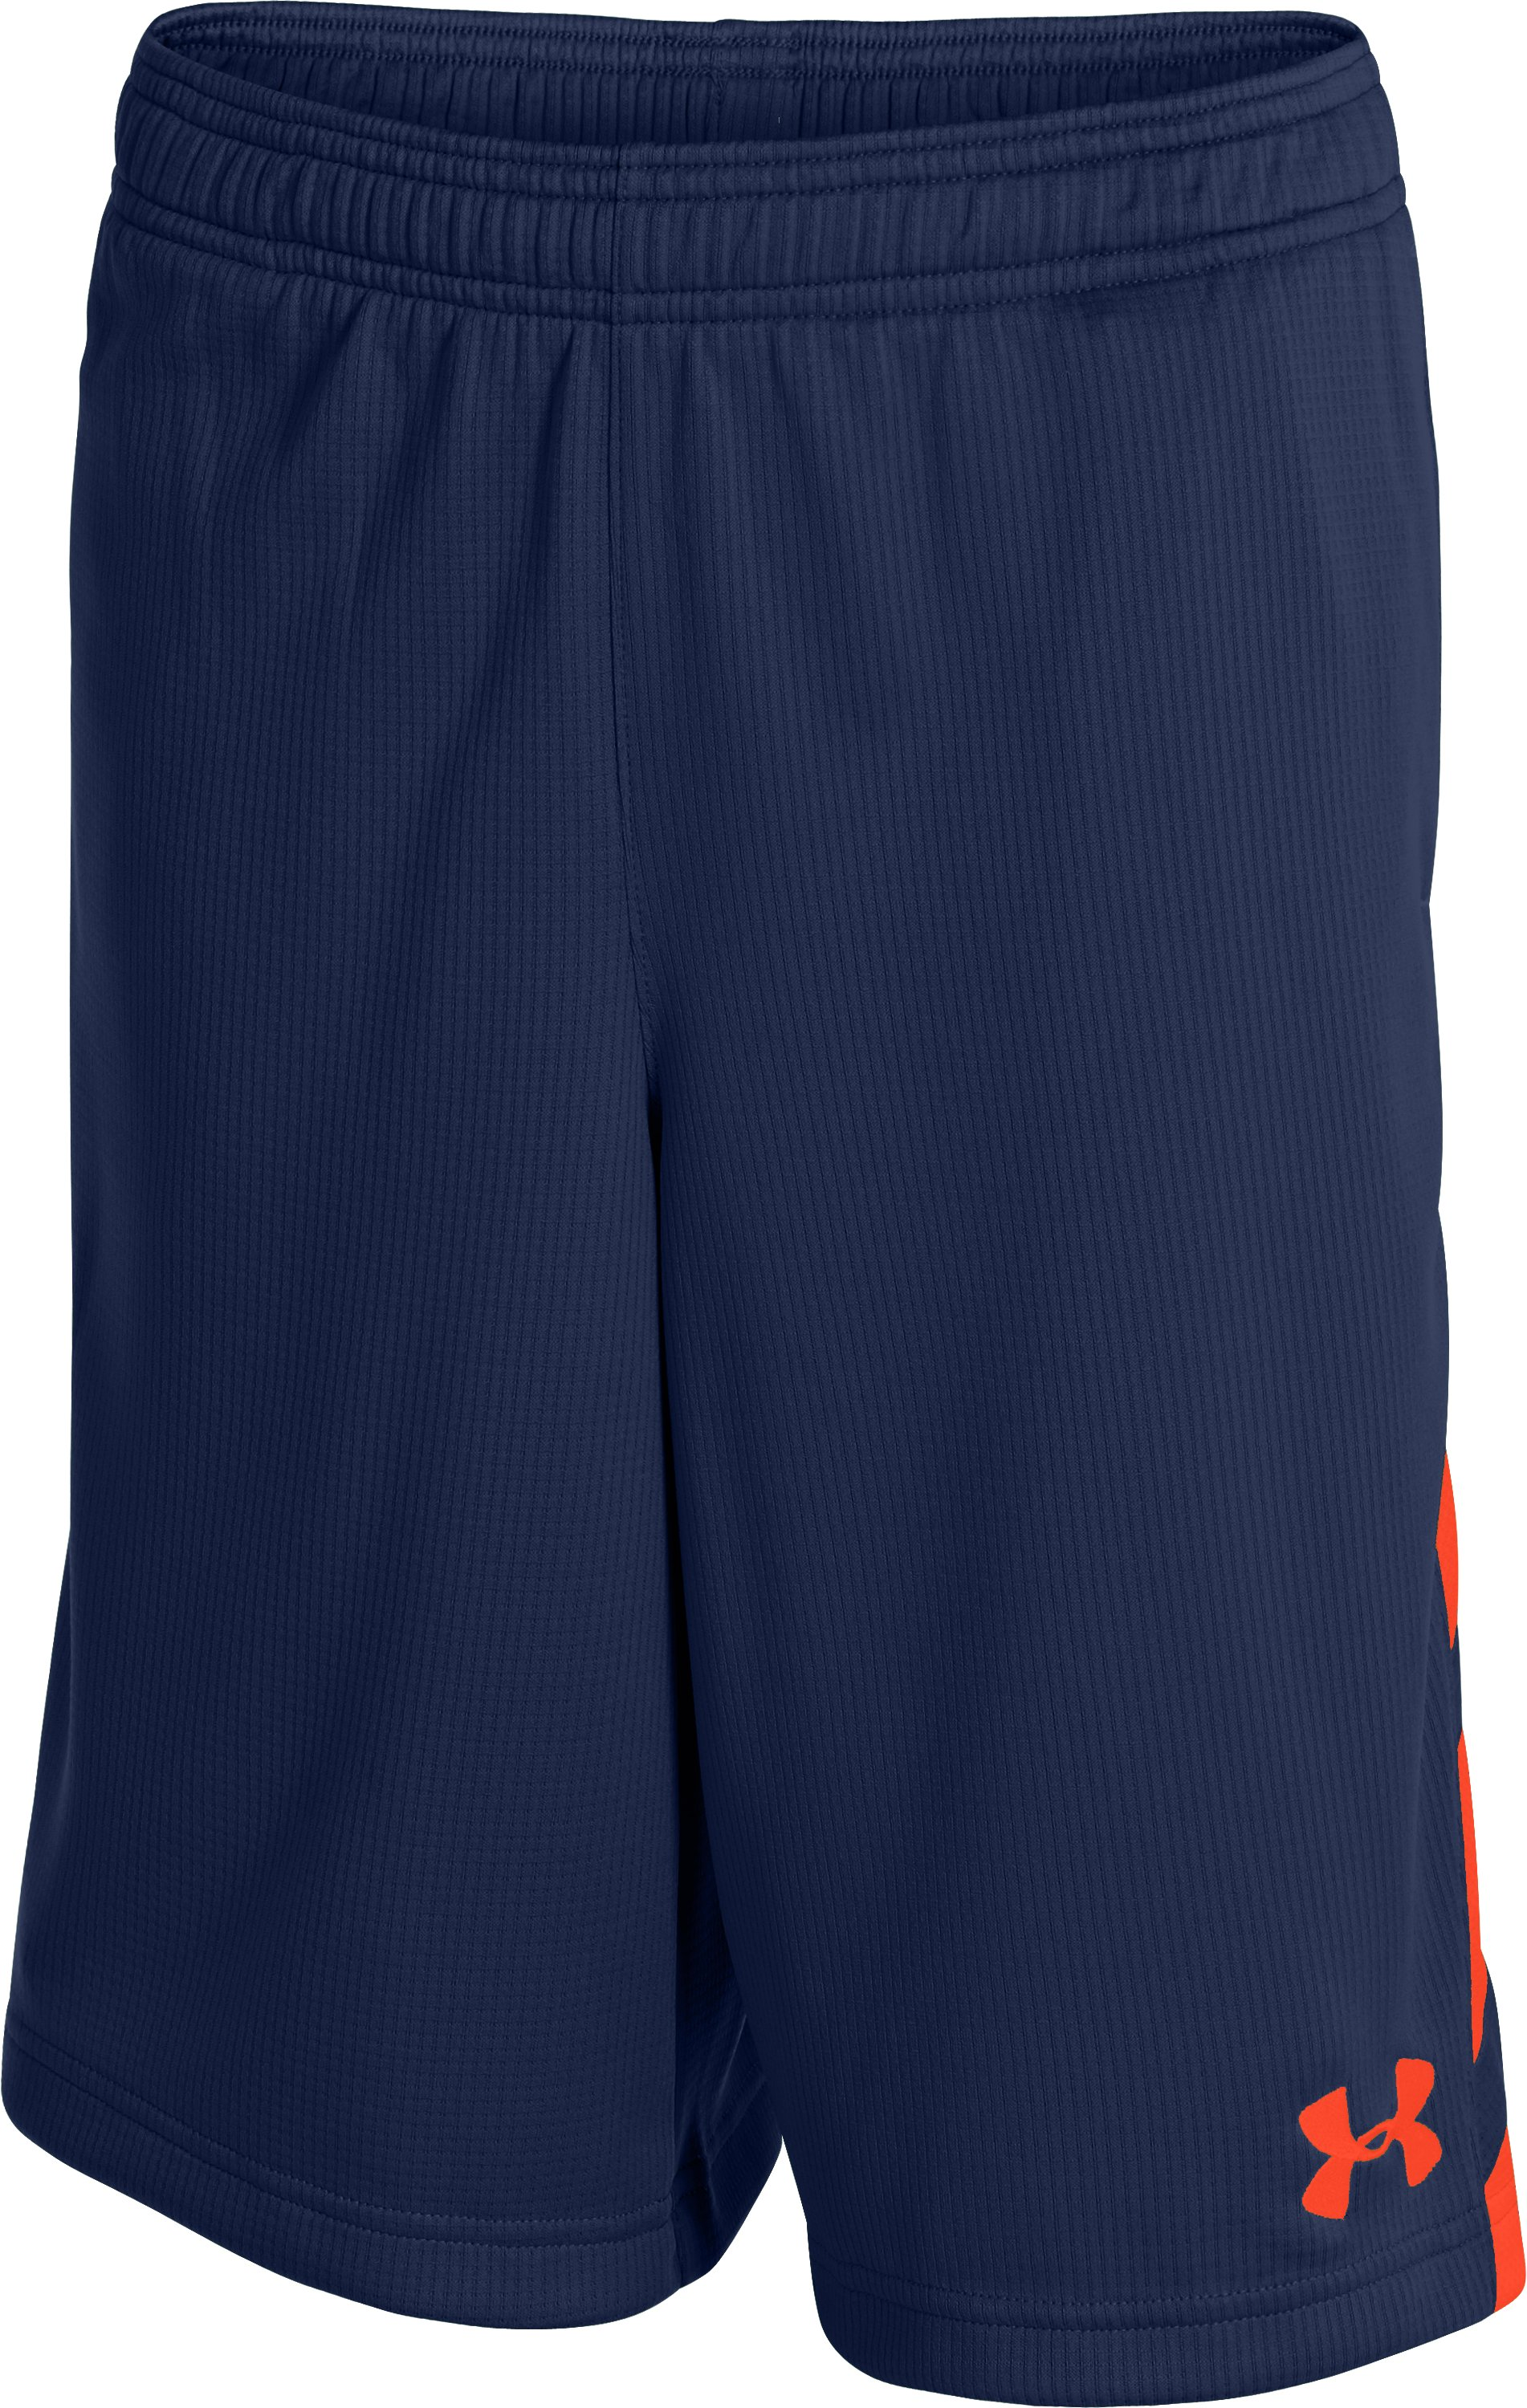 Boys' UA Big Timin Shorts, DEEP SPACE BLUE, zoomed image